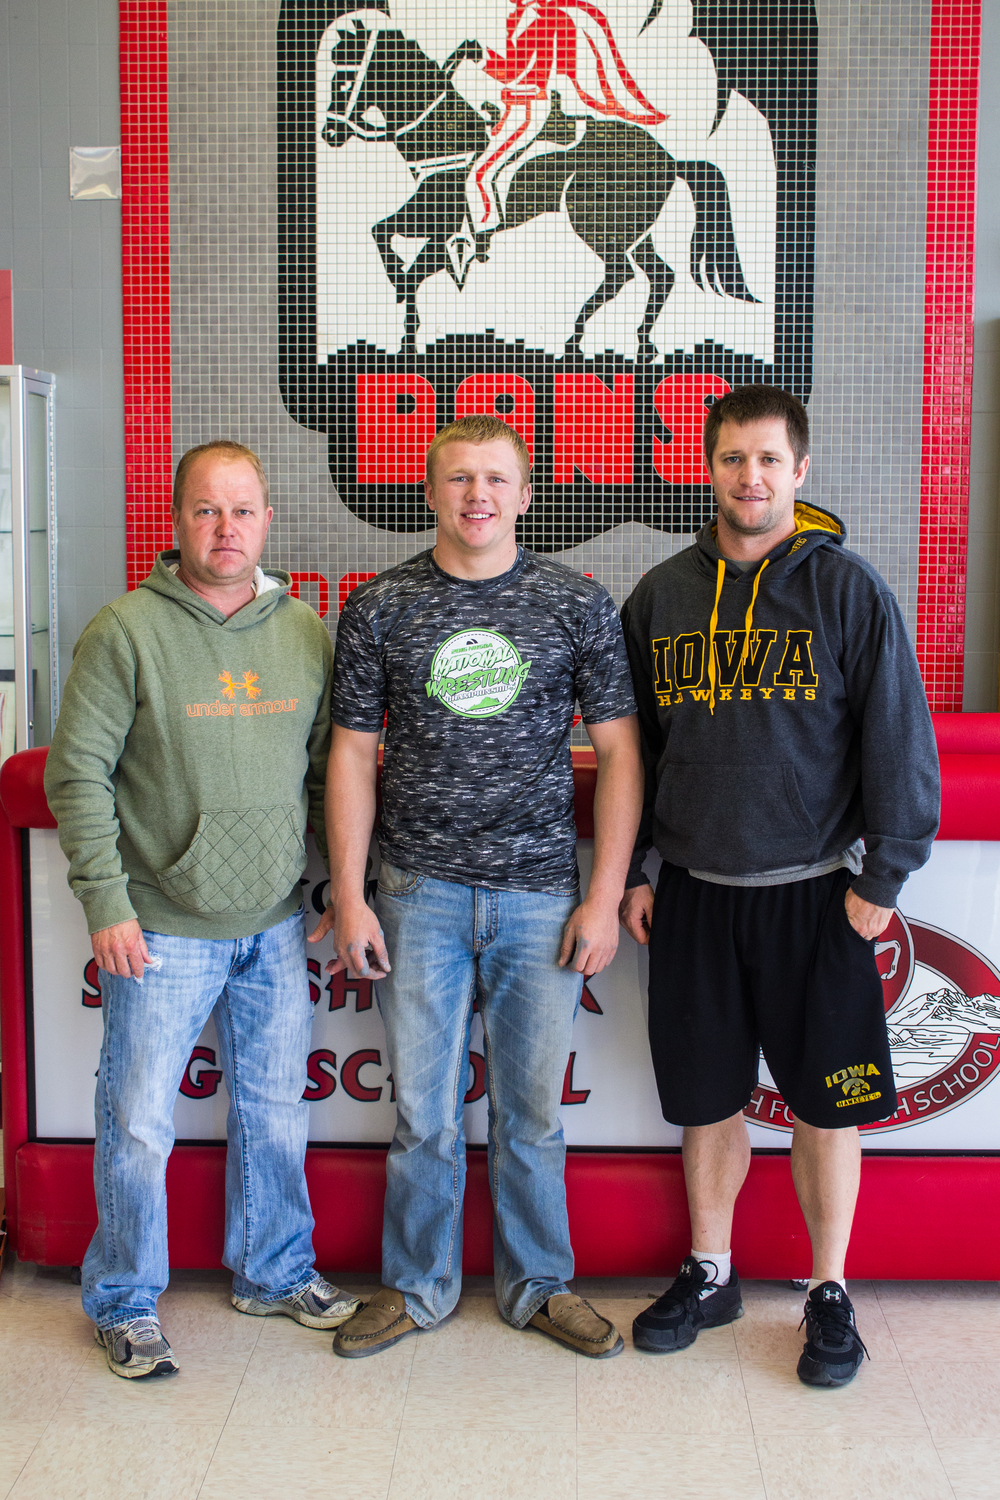 Pictured: Heber Shepherd (center) with Travis Shepherd (left) and Kip Spencer (right), two of his coaches.  Photo courtesy Spanish Fork High School